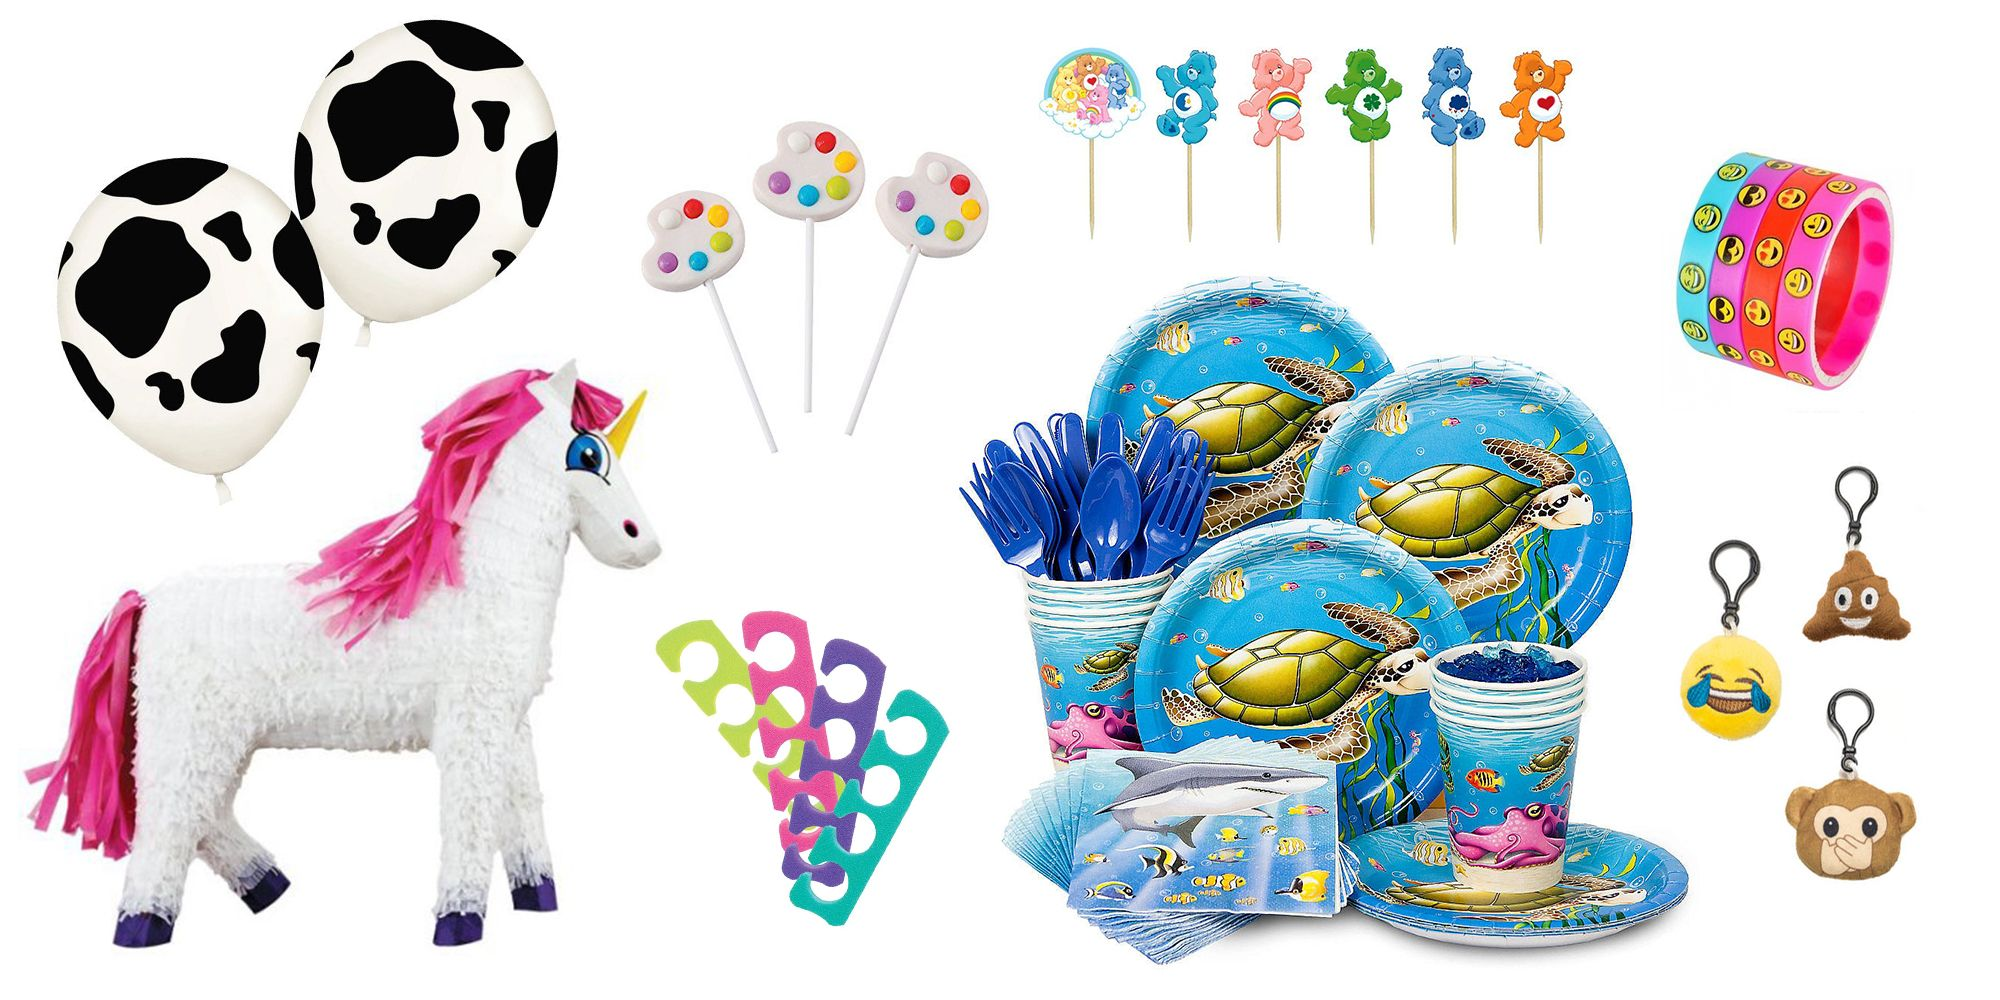 12 Unicorn Paper Cups Kids Birthday Party Accessories Tableware Pony Decorations